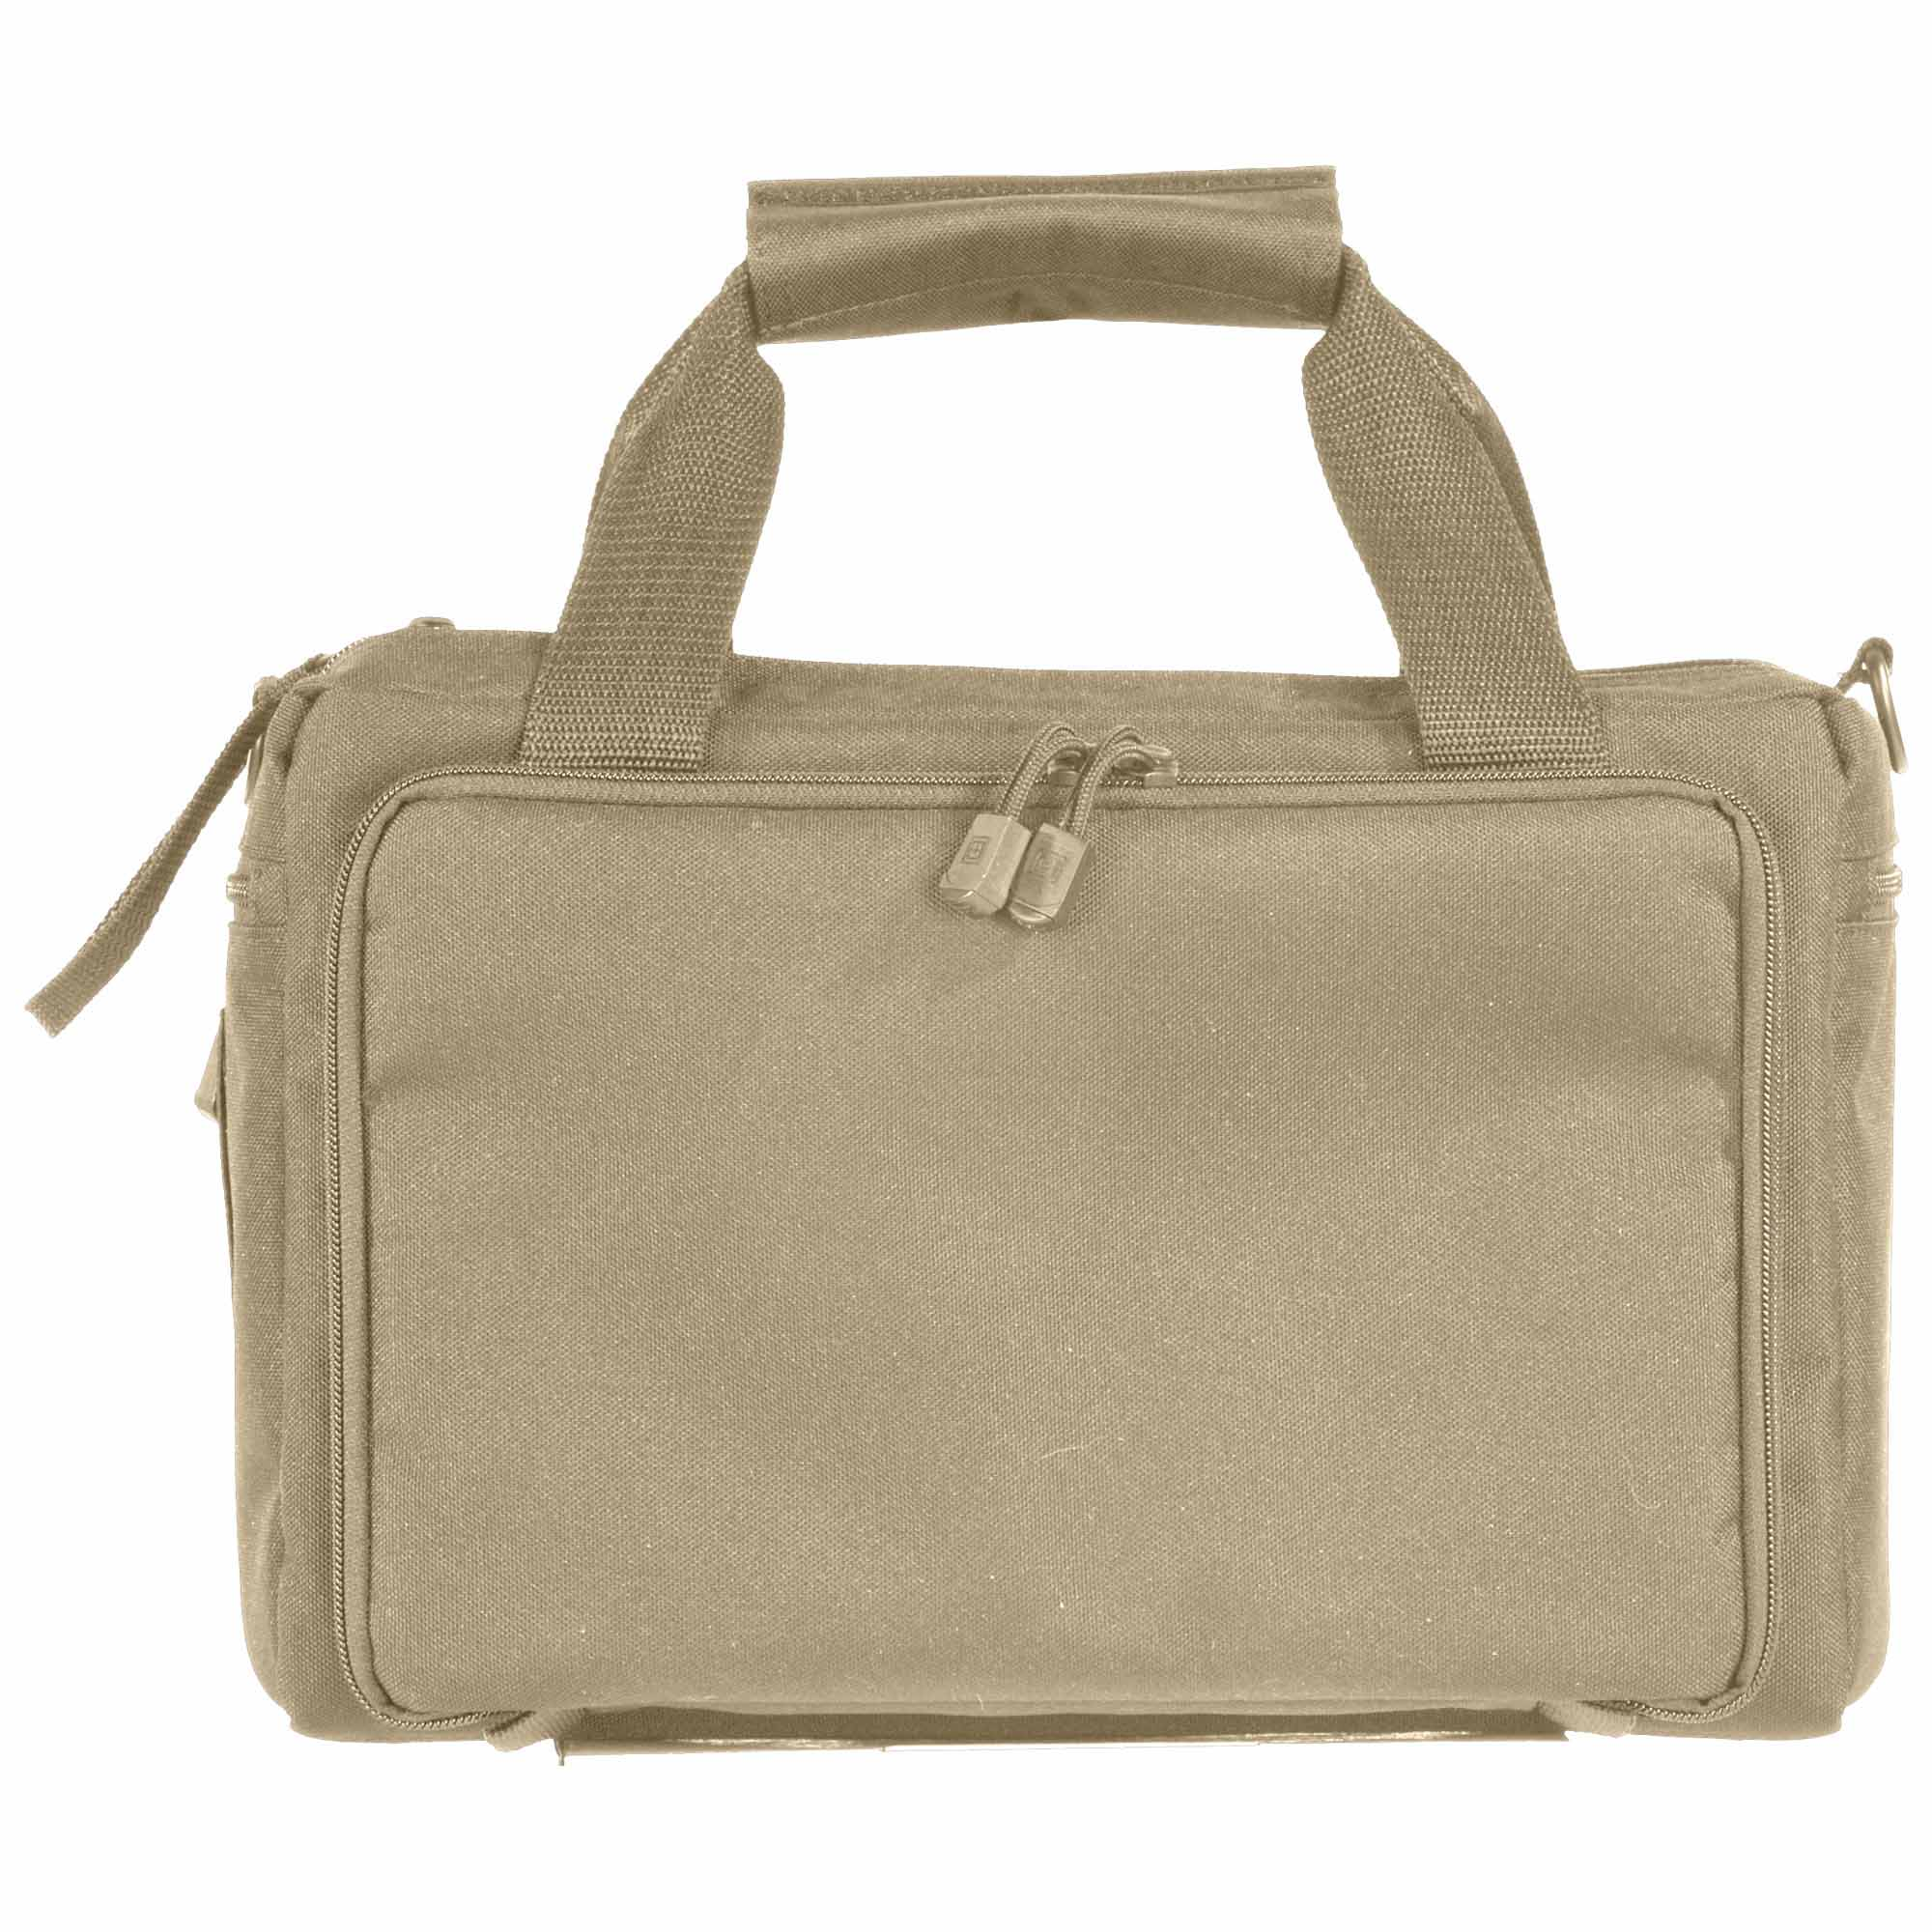 5.11 Tactical Range Qualifier Bag (Khaki/Tan) thumbnail